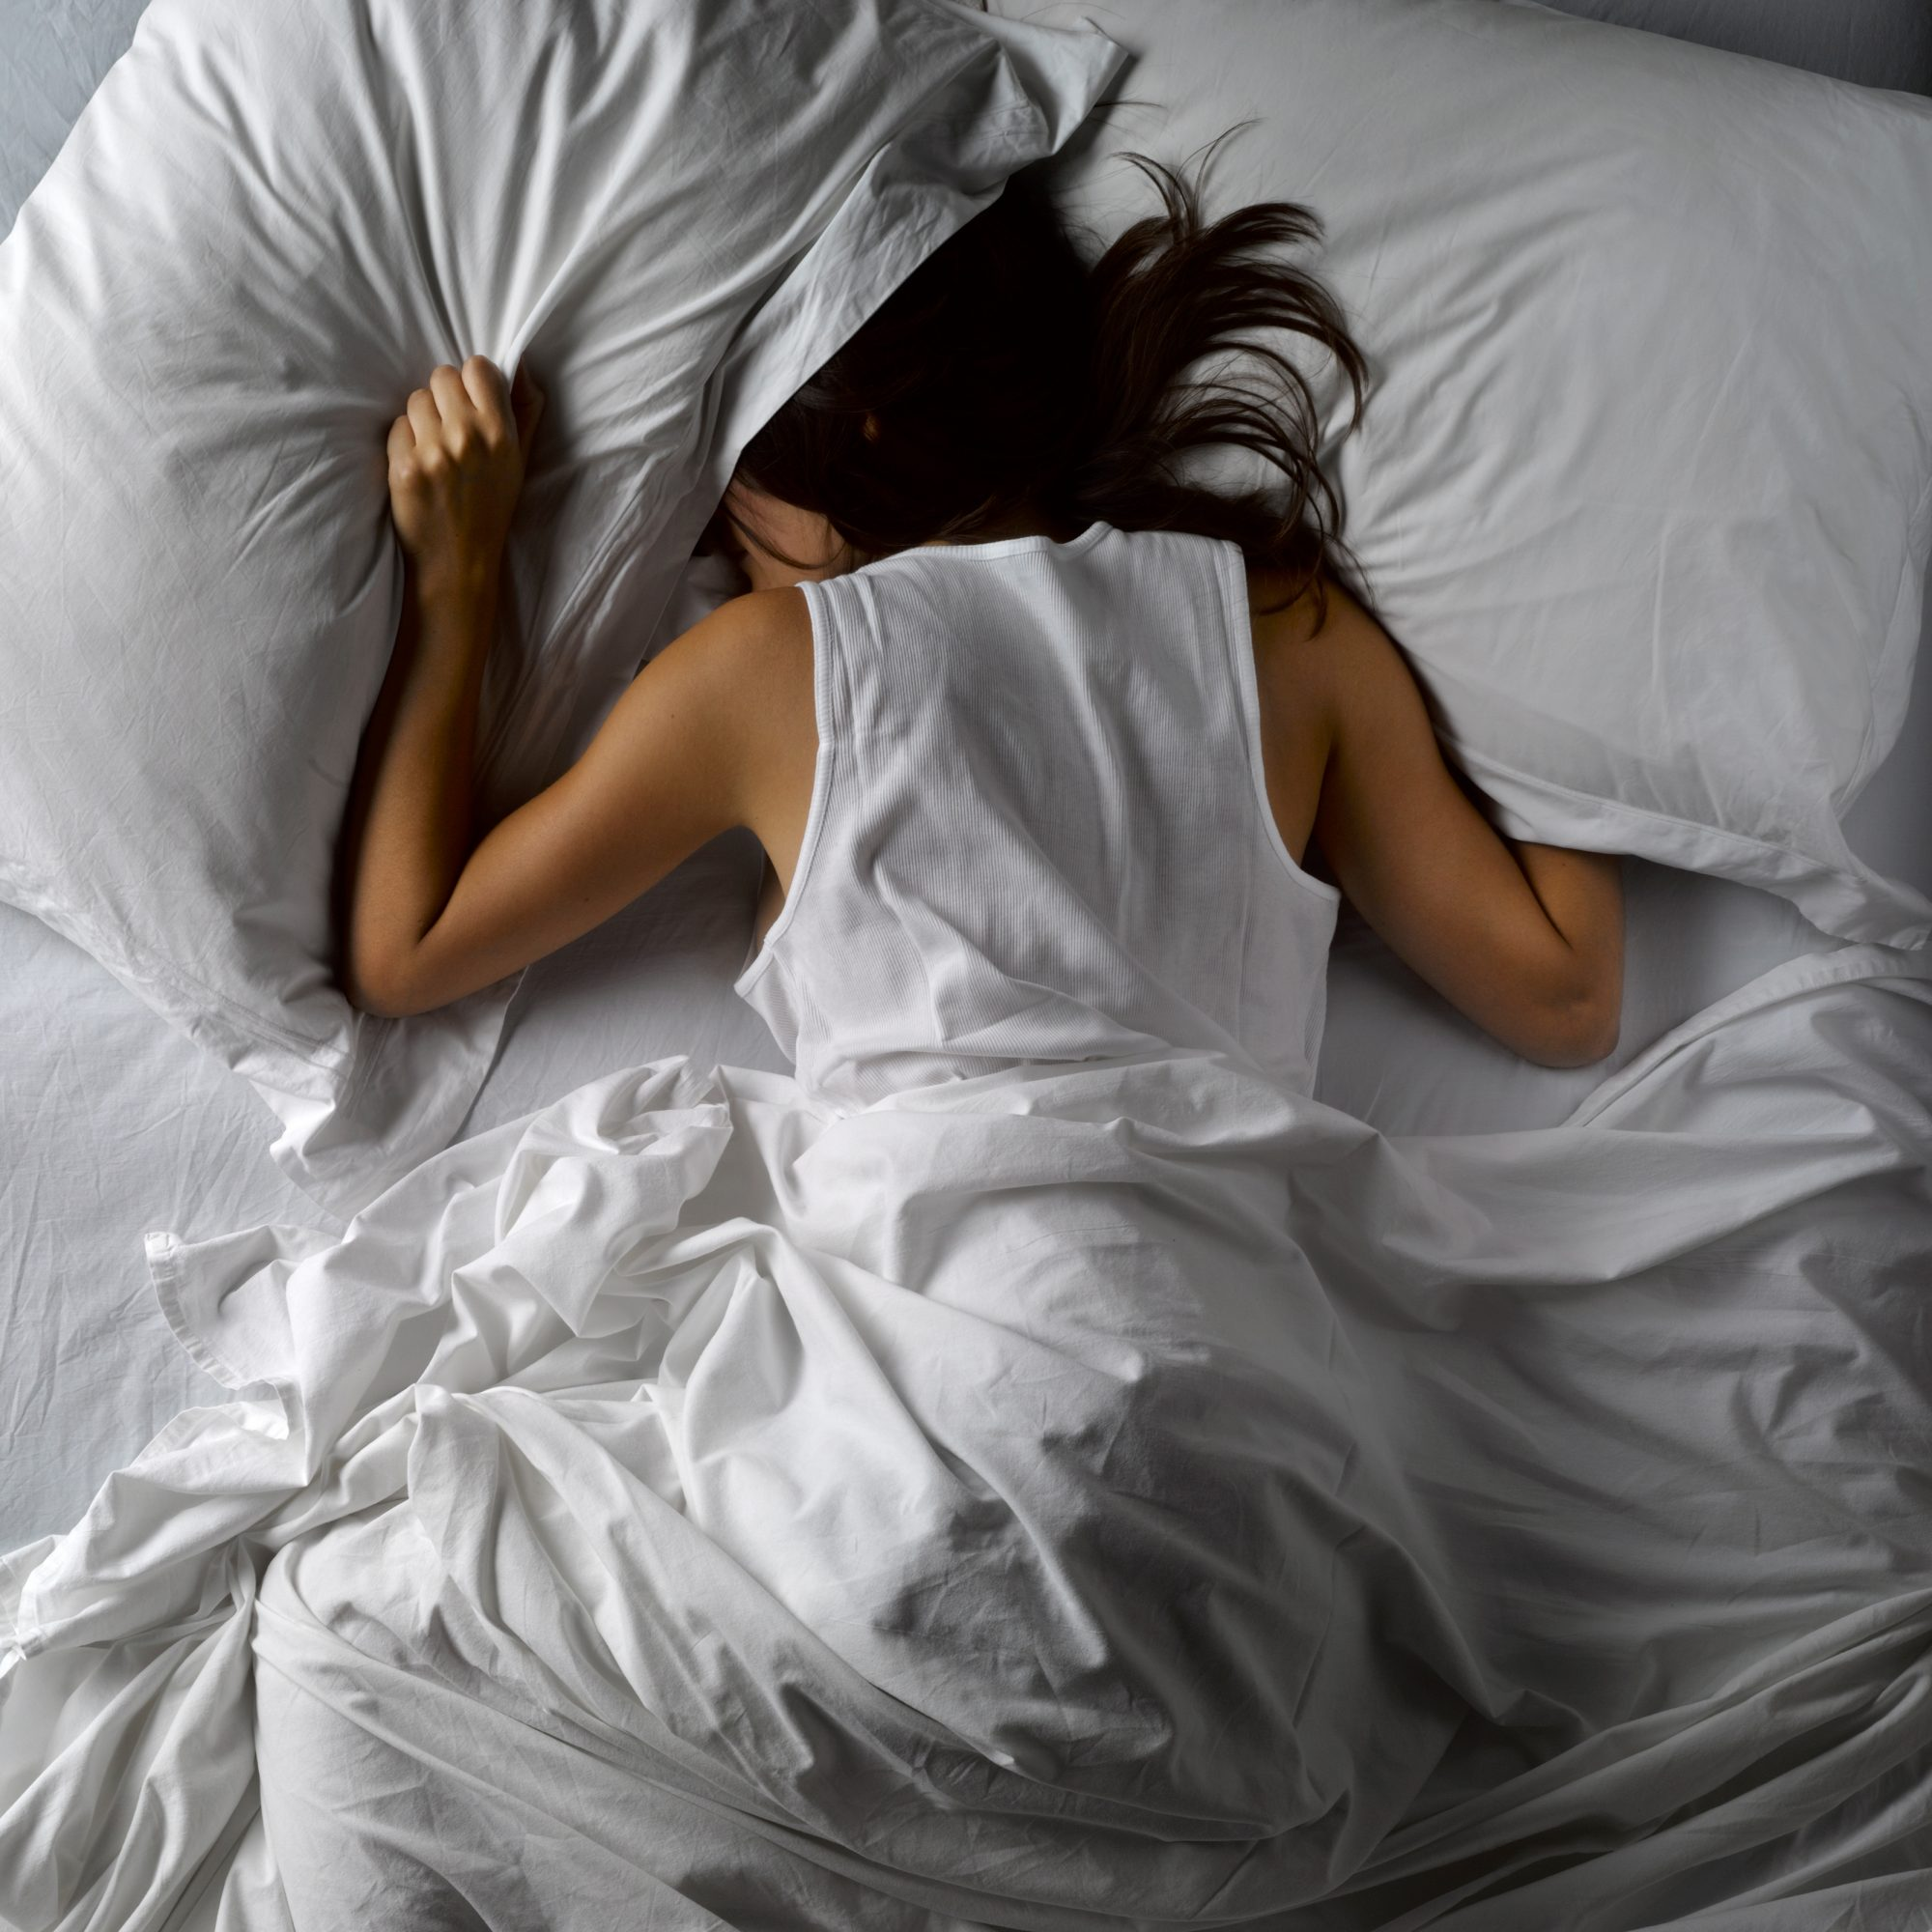 8 Common Sleep Problems—and How to Fix Them, According to Sleep Experts